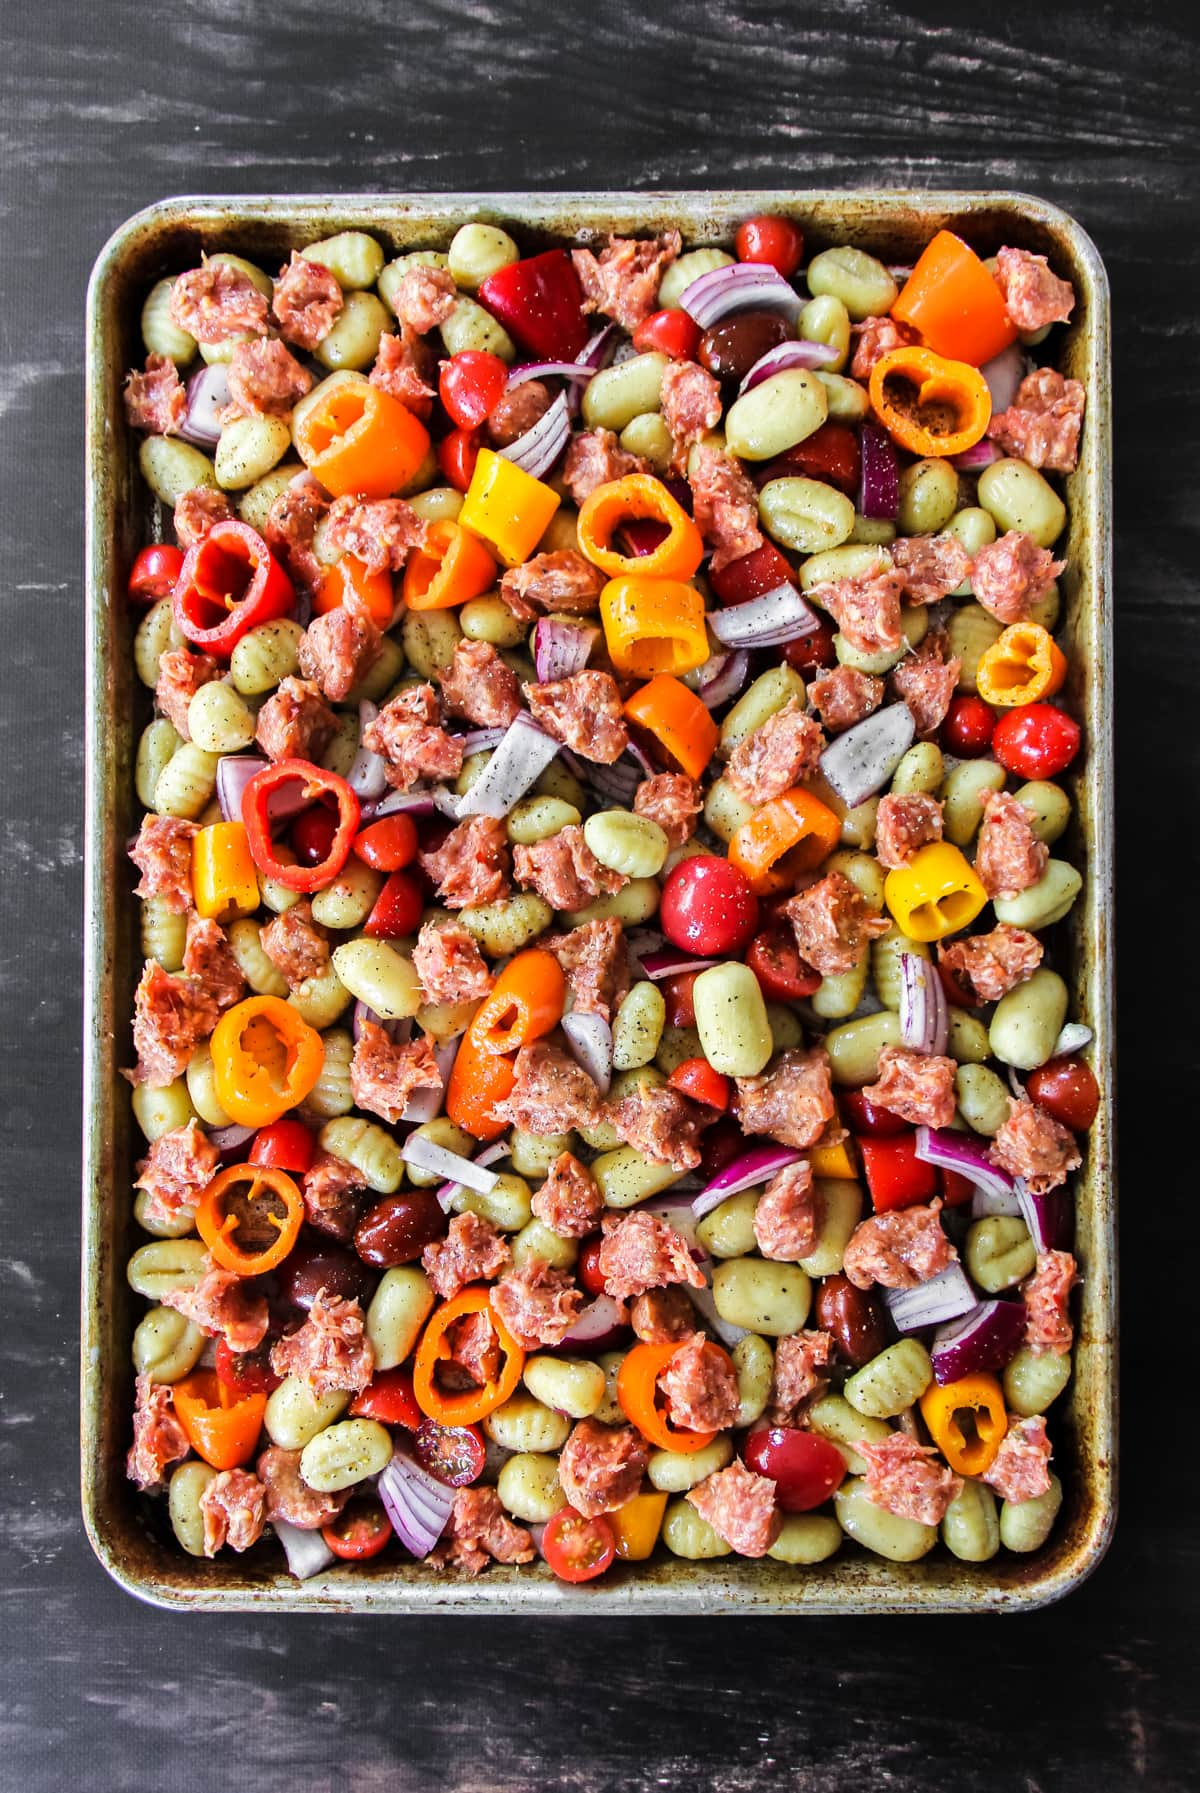 a top down view of a baking sheet filled with uncooked crumbled sausage, sliced peppers, onions and tomatoes